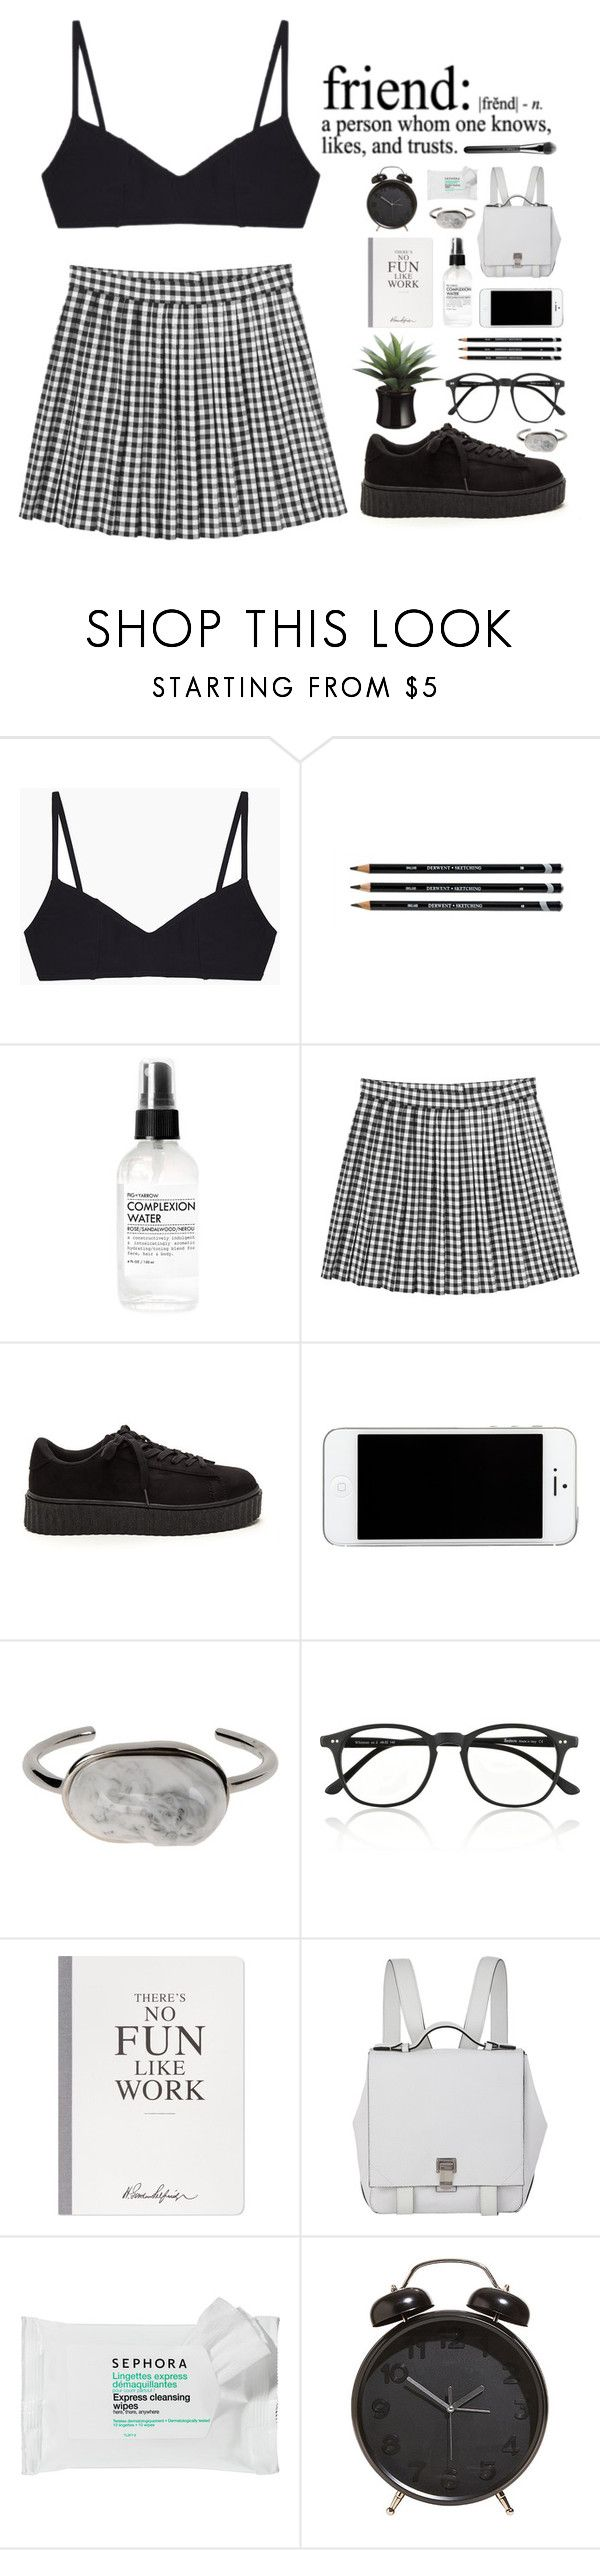 """-he doesn't give a damn about me-"" by unicorns-in-cloud9 ❤ liked on Polyvore featuring Araks, Fig+Yarrow, Monki, Balenciaga, Illesteva, Selfridges, Proenza Schouler, Sephora Collection and MAC Cosmetics"